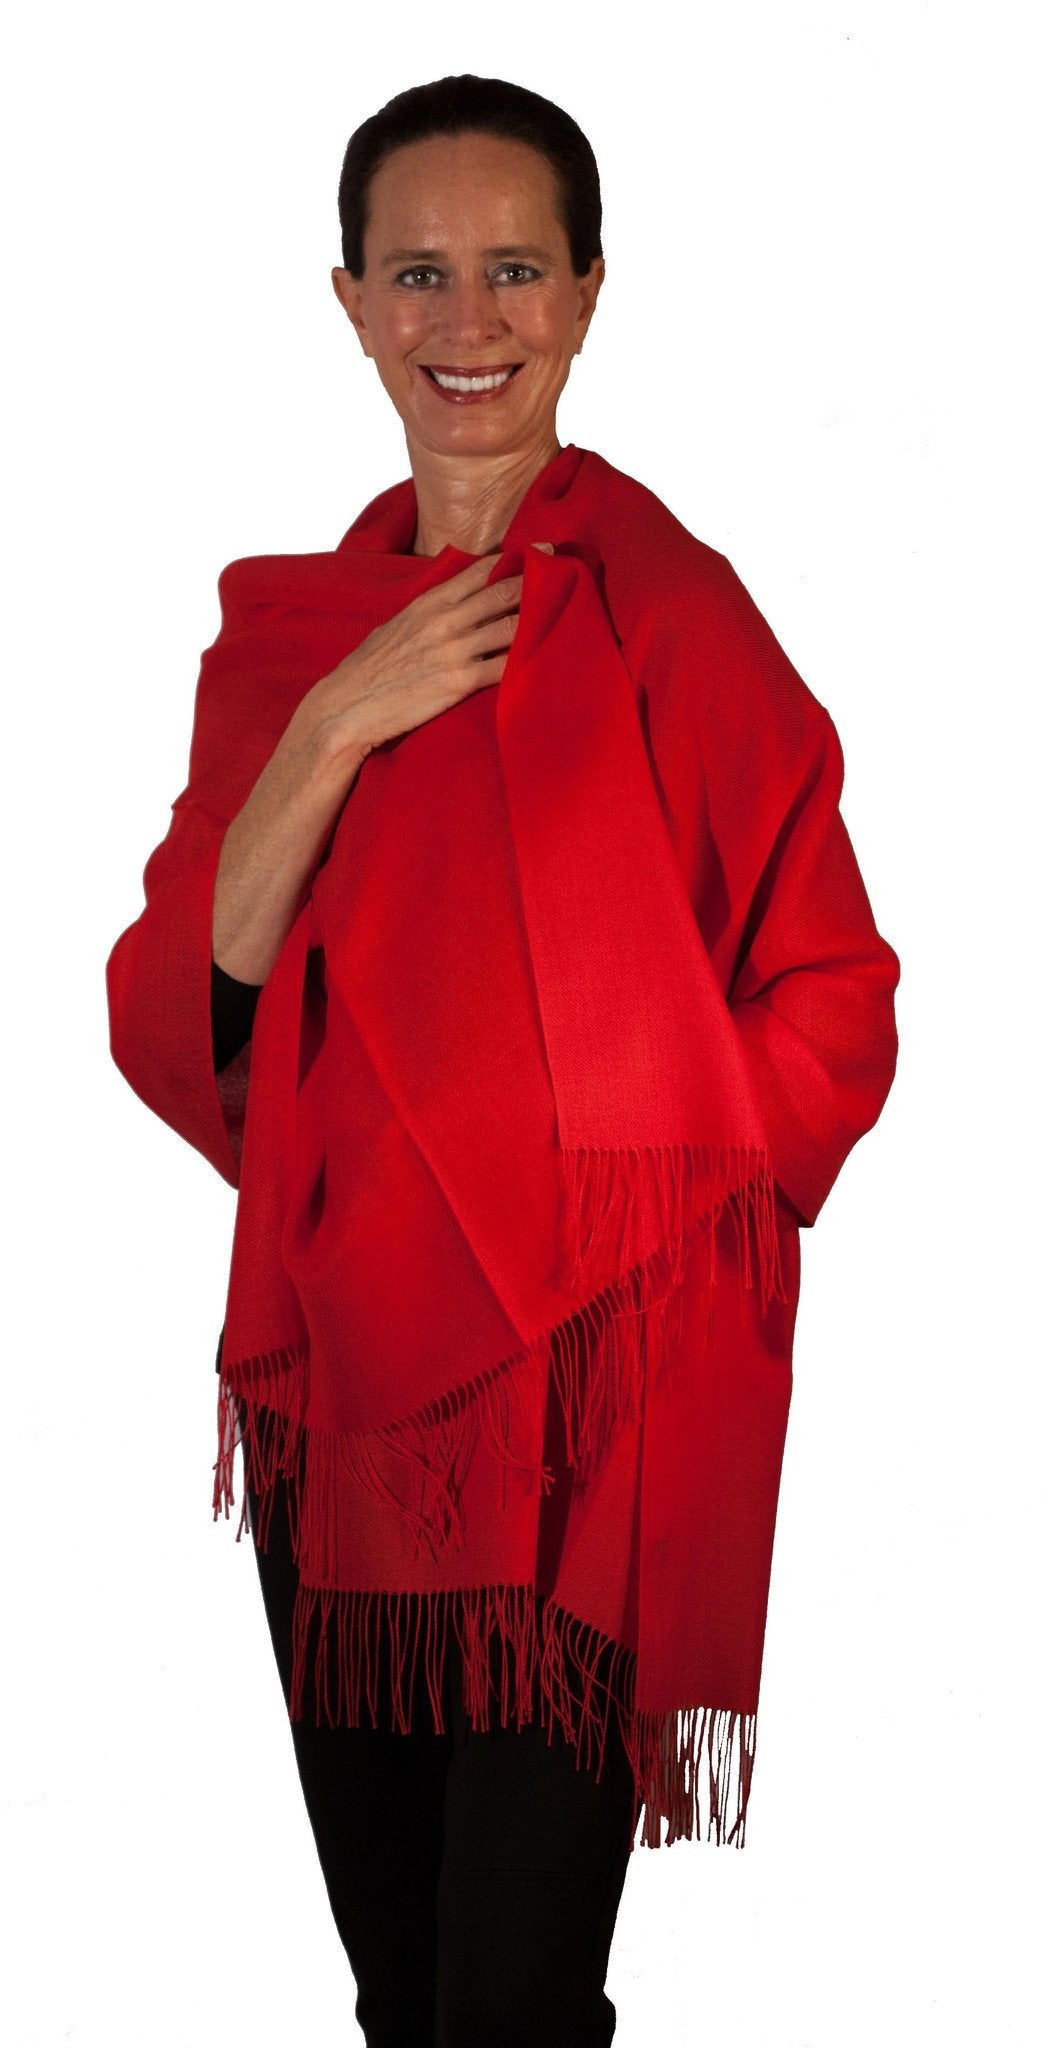 Baby Alpaca & Silk Shawl in Solid Color - Red - Qinti - The Peruvian Shop